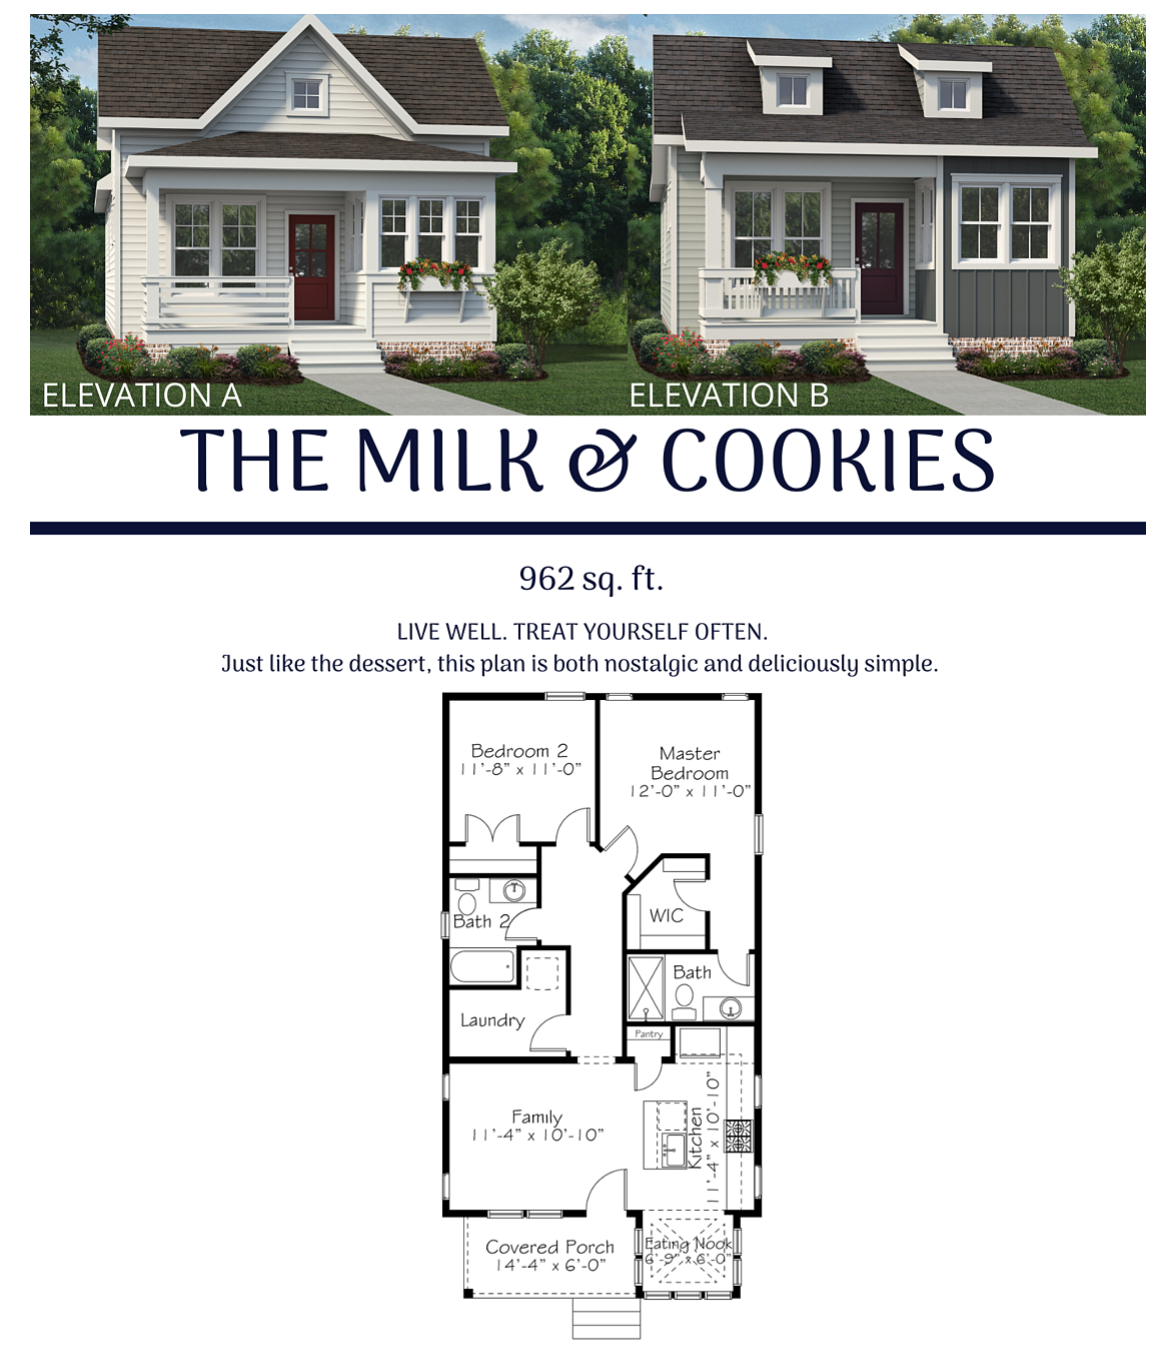 Milk & Cookies - Chatham Park - Triangle Real Estate Journal